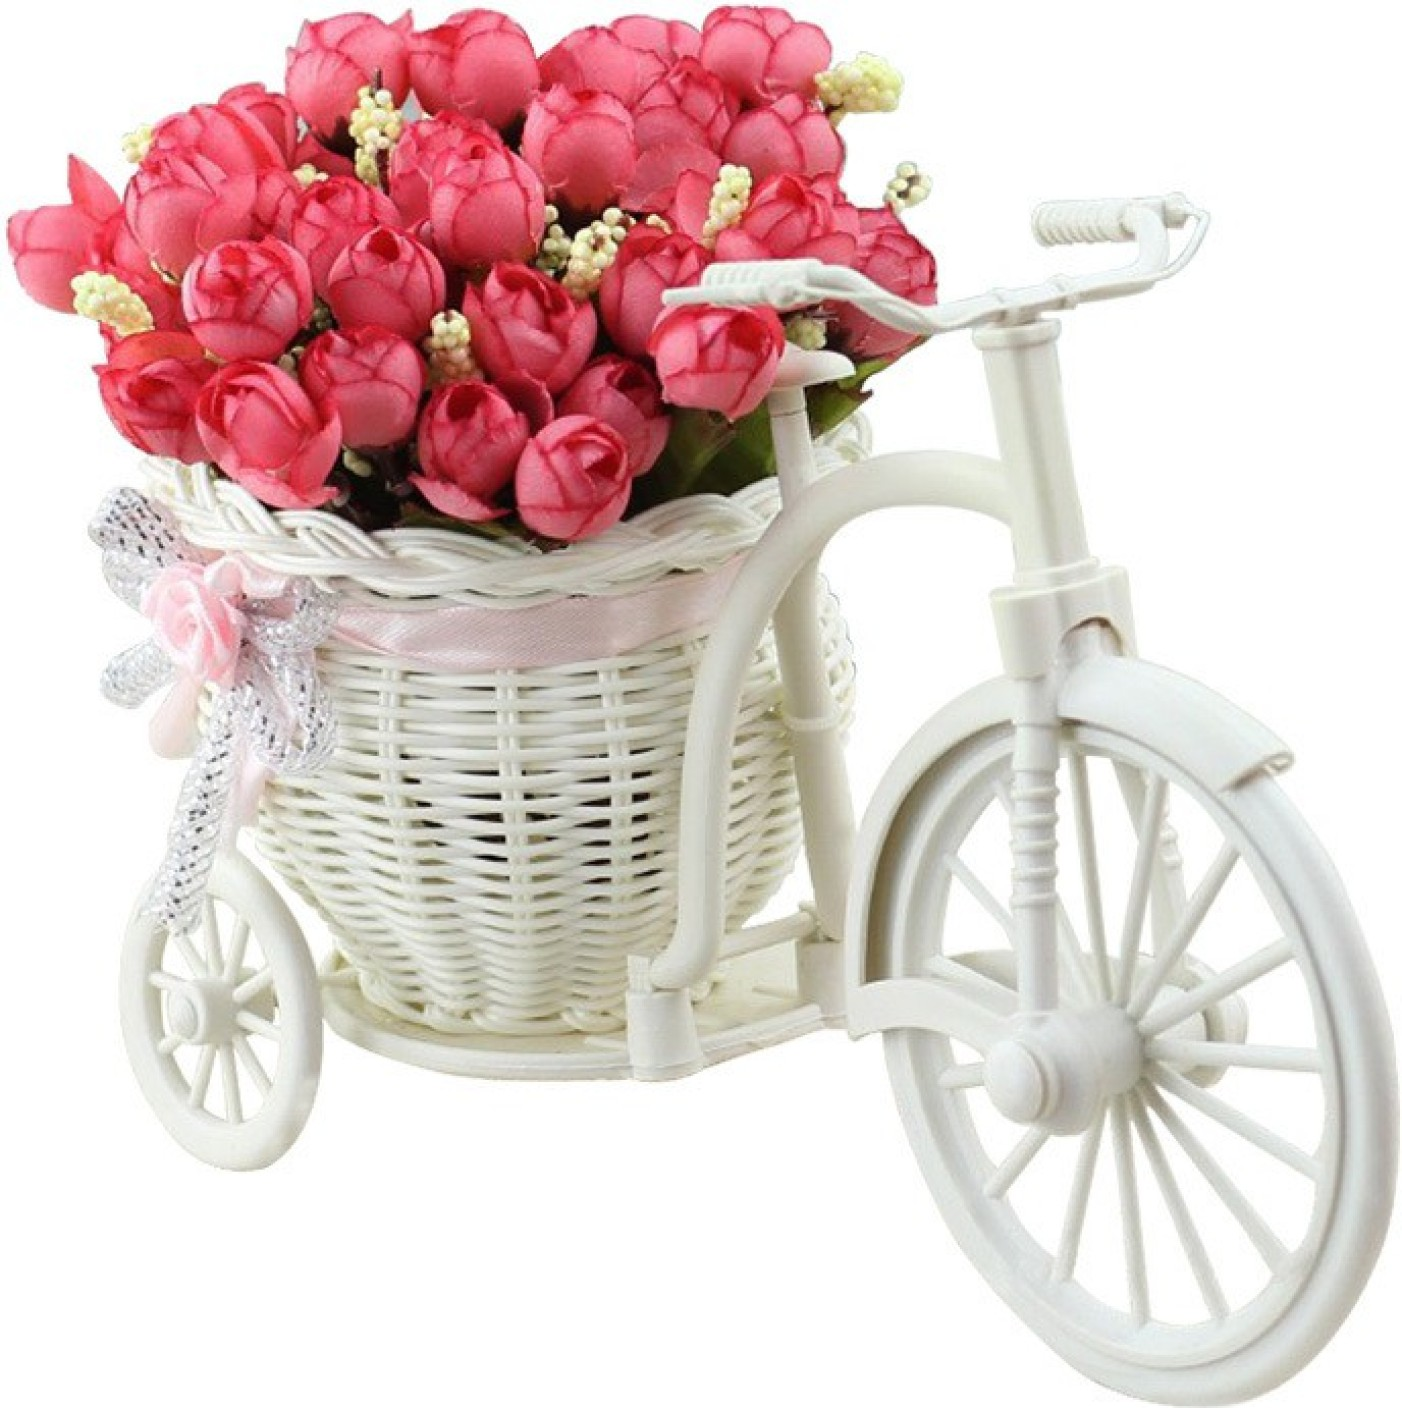 Artificial Flower Baskets Online : Tiedribbons cycle vase red peonies plastic flower basket